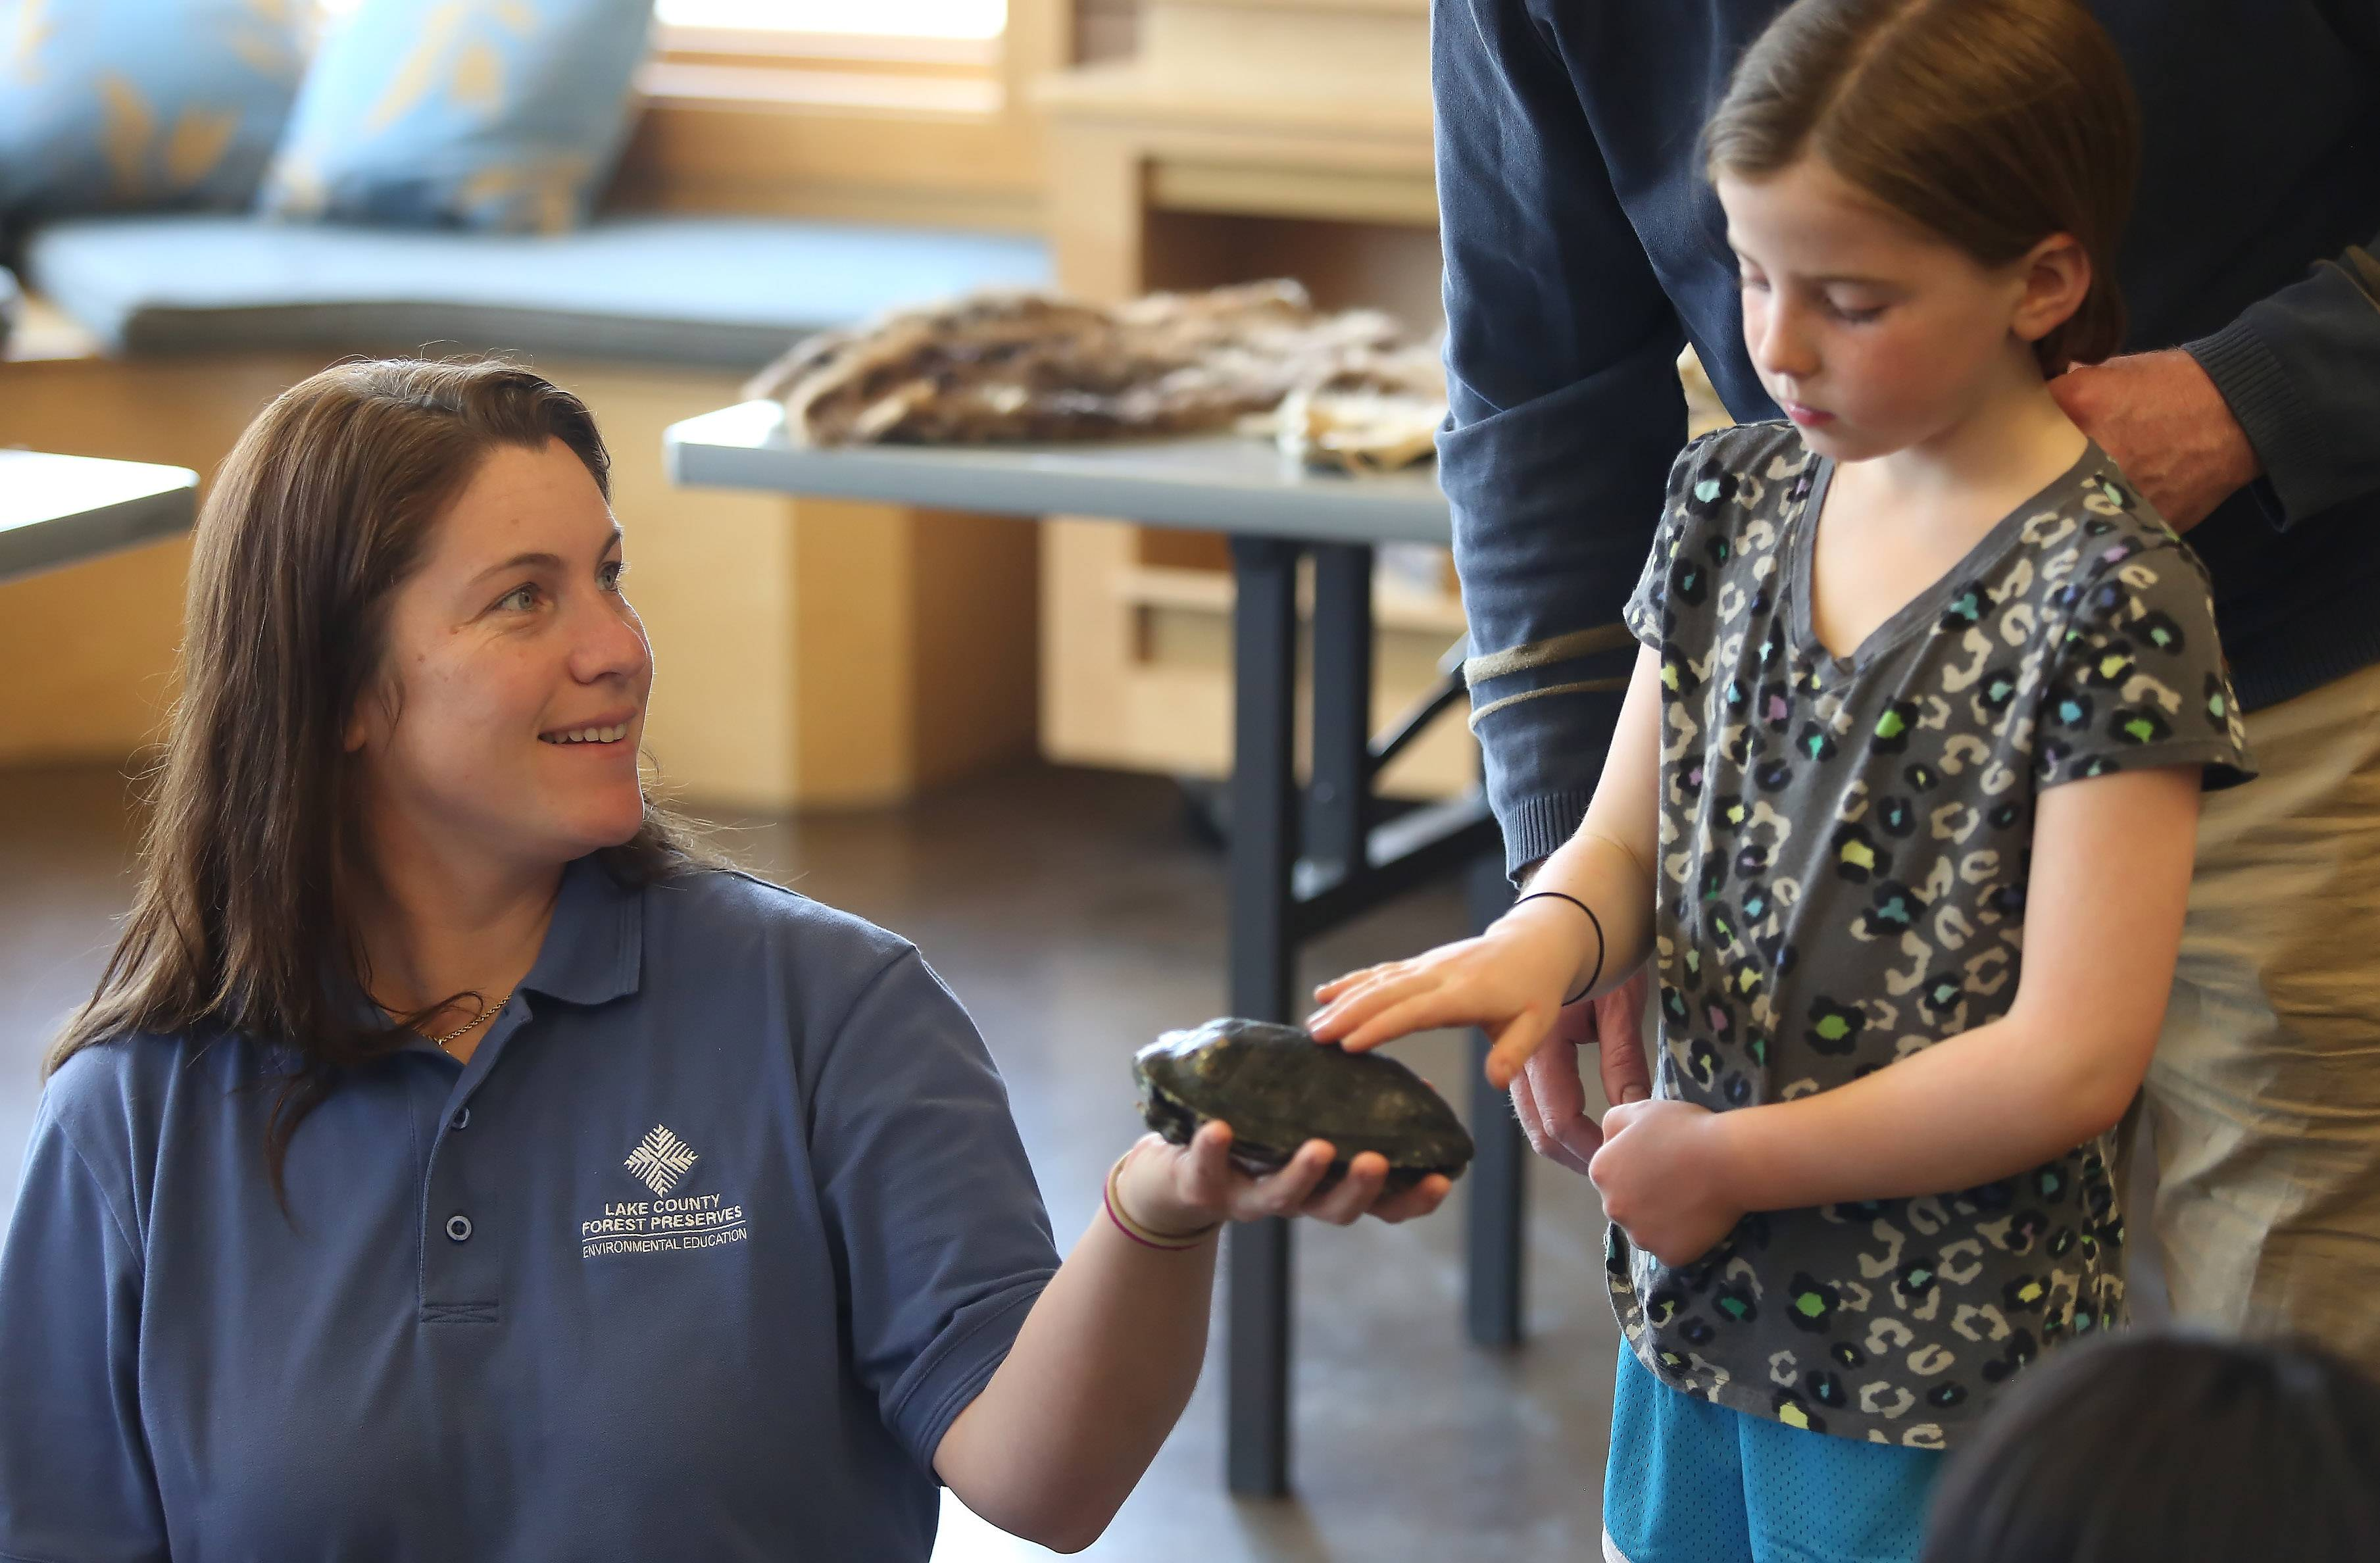 Environmental educator Melissa Alderson holds a turtle for Ella Kennedy, 8, of Libertyville to touch during the Greet Education Animals program Sunday hosted by the Lake County Forest Preserve District at Ryerson Conversation Area near Riverwoods. The event kicked off a week of programs celebrating Earth Day.